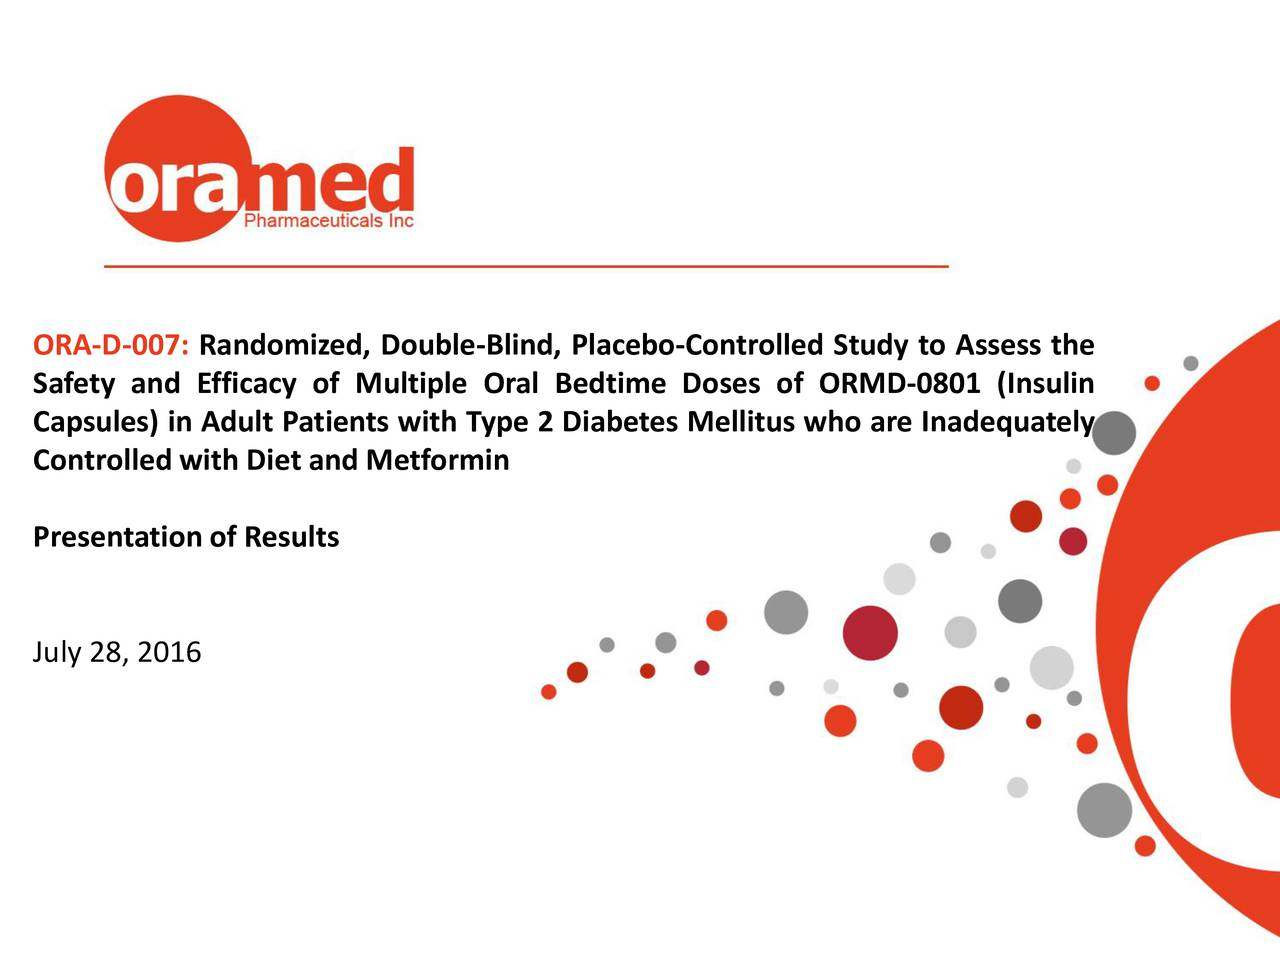 Safety and Efficacy of Multiple Oral Bedtime Doses of ORMD-0801 (Insulin Capsules) in Adult Patients with Type 2 Diabetes Mellitus who are Inadequately Controlled with Diet and Metformin Presentation of Results July 28, 2016